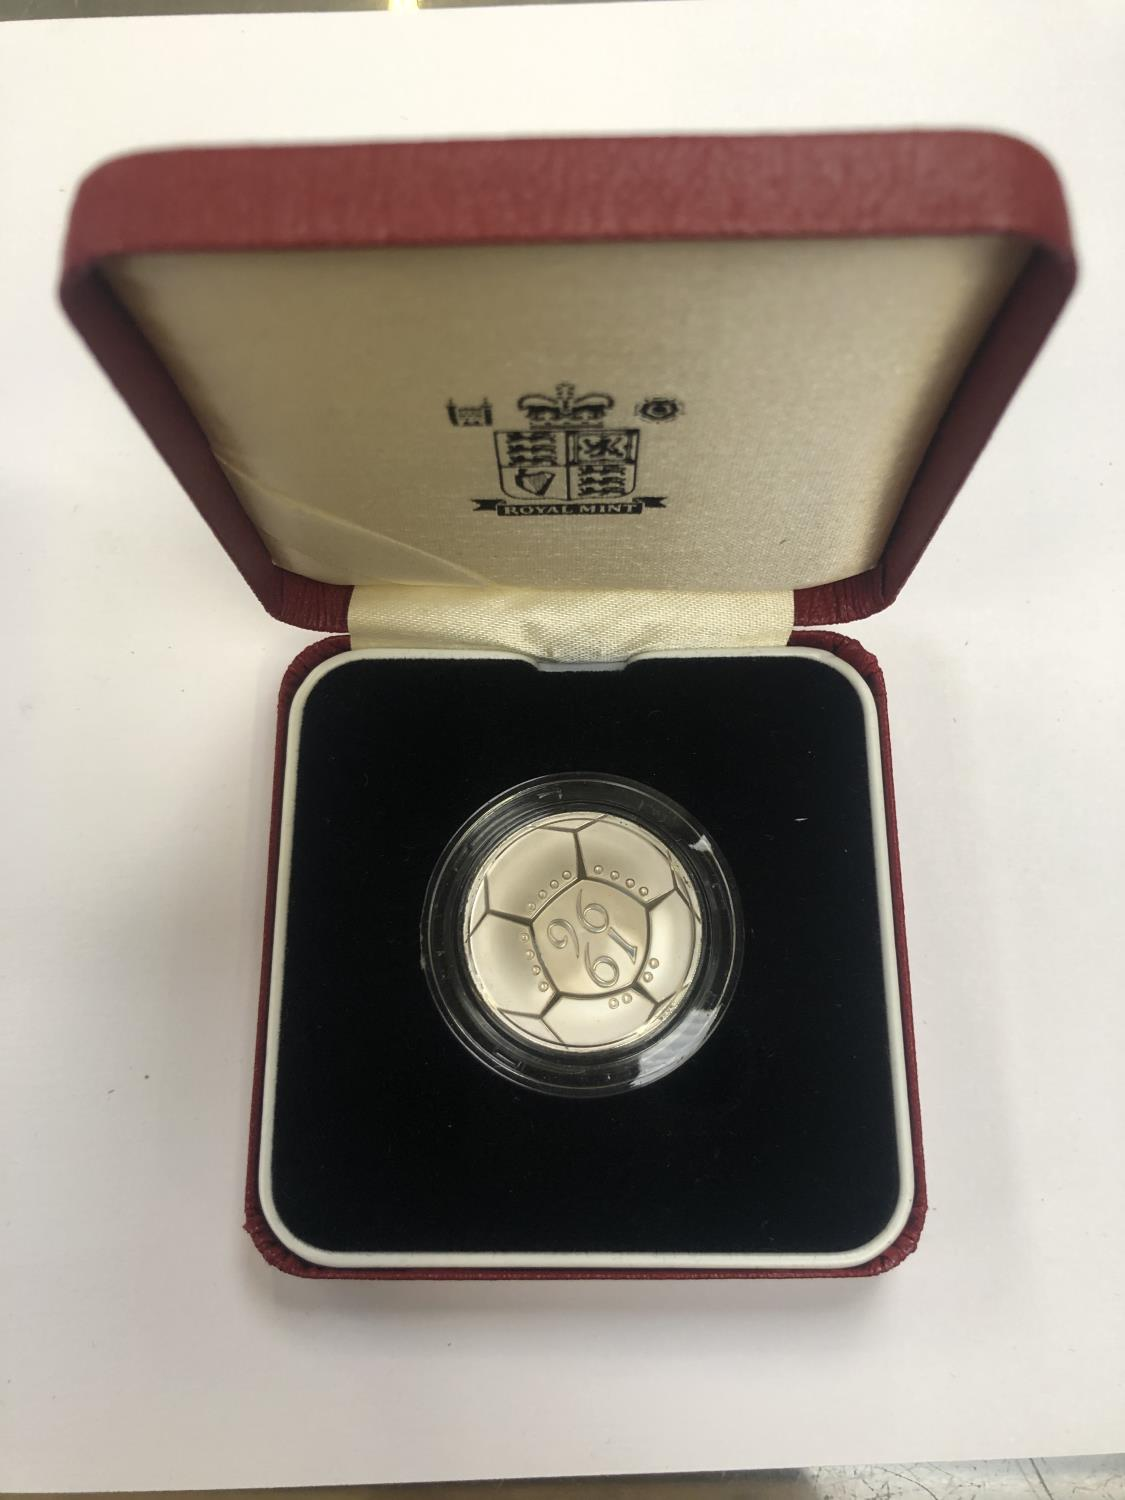 """Lot 532 - 1996 UK ROYAL MINT """"EUROPEAN FOOTBALL TWO POUNDS SILVER COIN"""", ENCAPSULATED AND BOXED"""